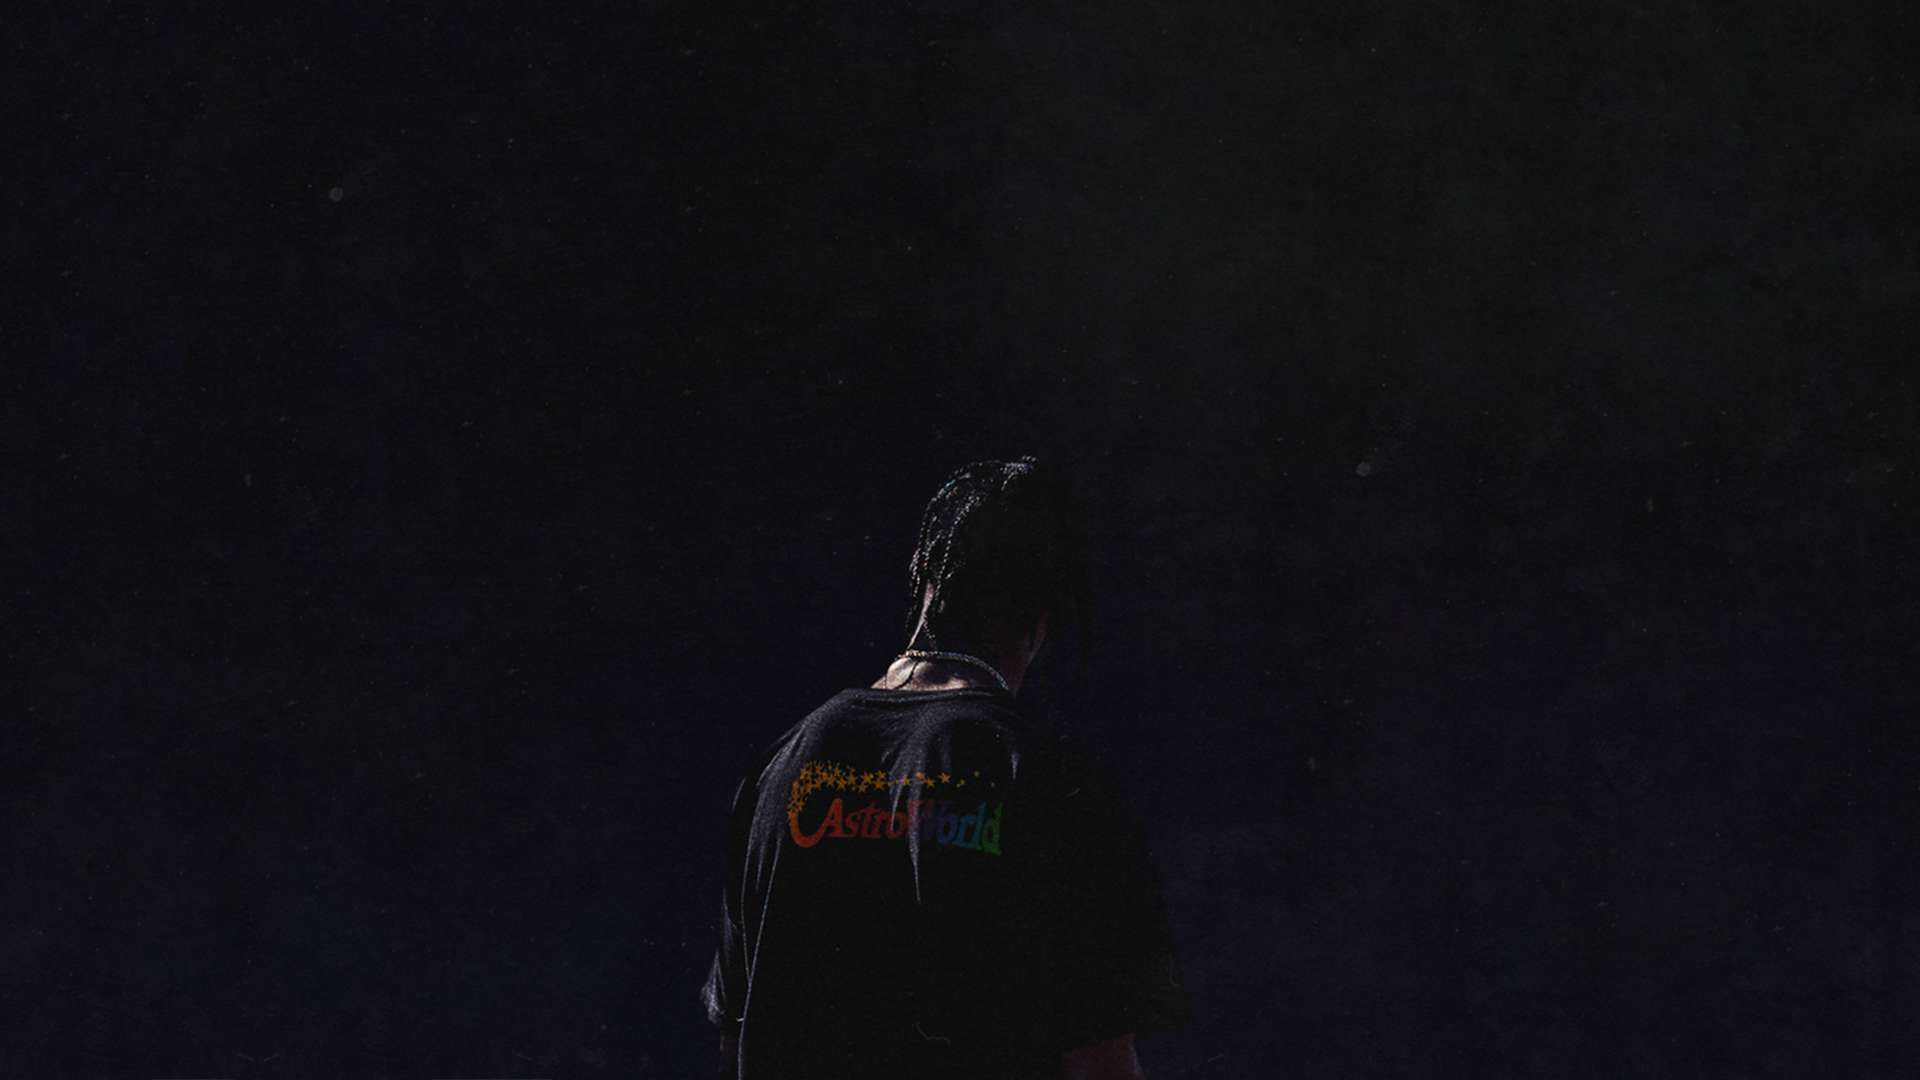 Travis Scott Computer Wallpaper Posted By Zoey Tremblay